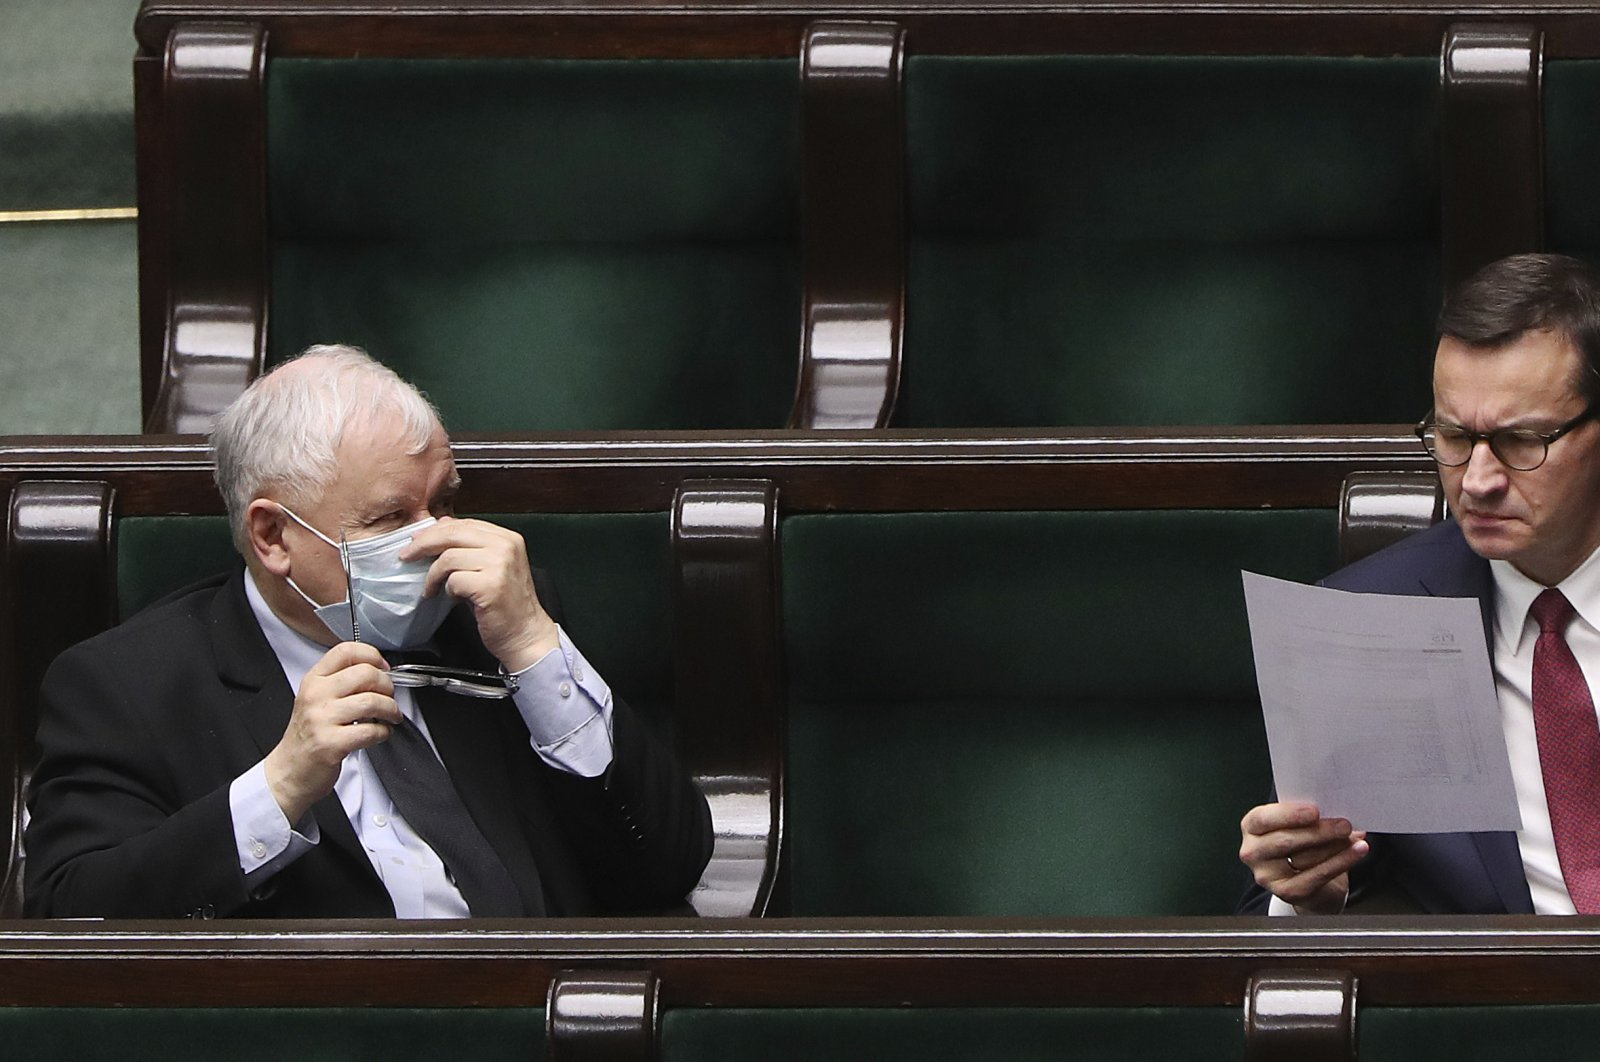 Poland's main ruling party leader Jaroslaw Kaczynski, left, wearing a mask for protection against the coronavirus and Polish Prime Minister Mateusz Morawiecki, right, work in parliament on new legislation that is to ensure the health and safety of the postponed presidential election to be held this summer, in Warsaw, Poland, Tuesday, May 12, 2020. (AP Photo)